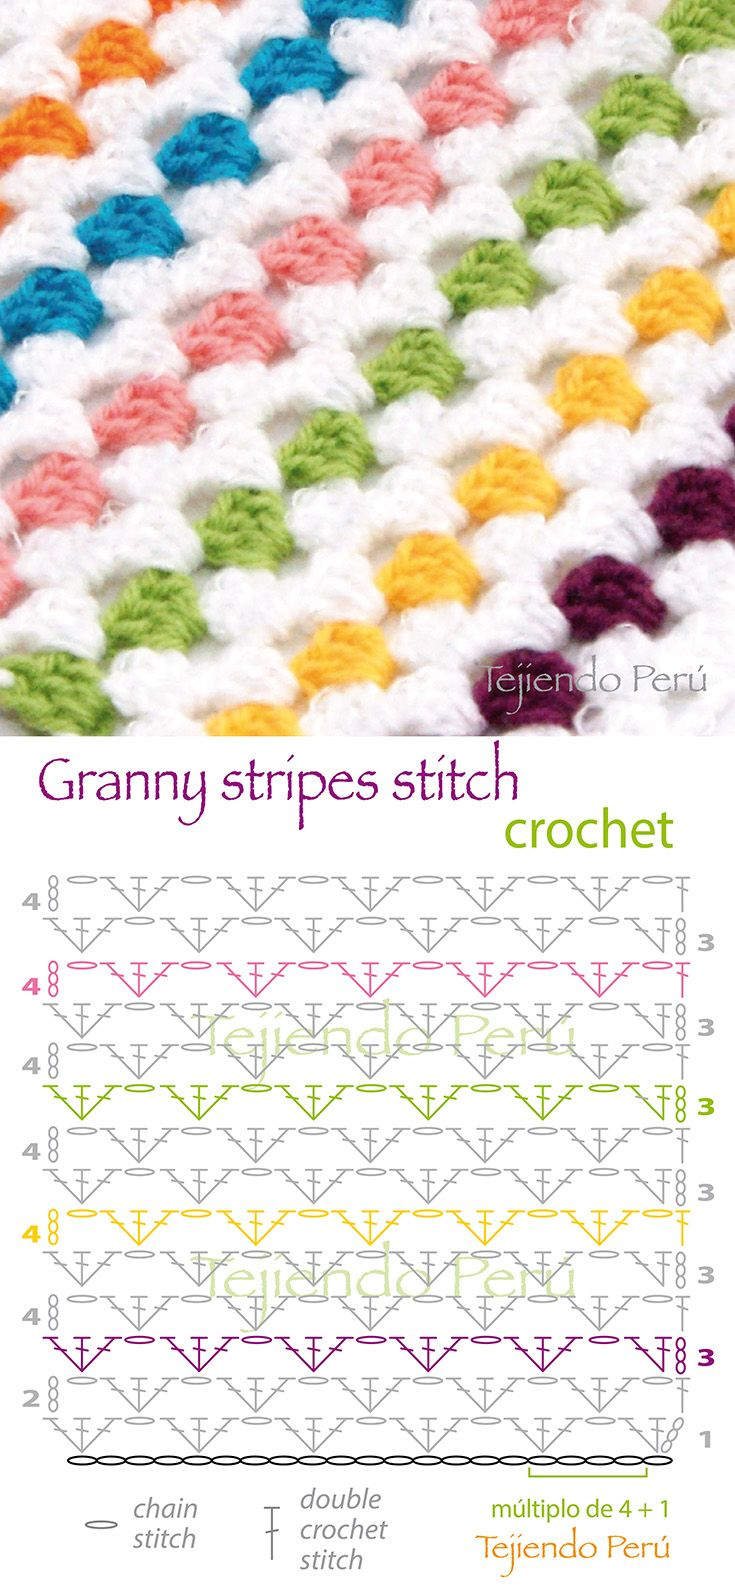 Crochet granny stripes stitch diagram! (Pattern or chart) | patrones ...